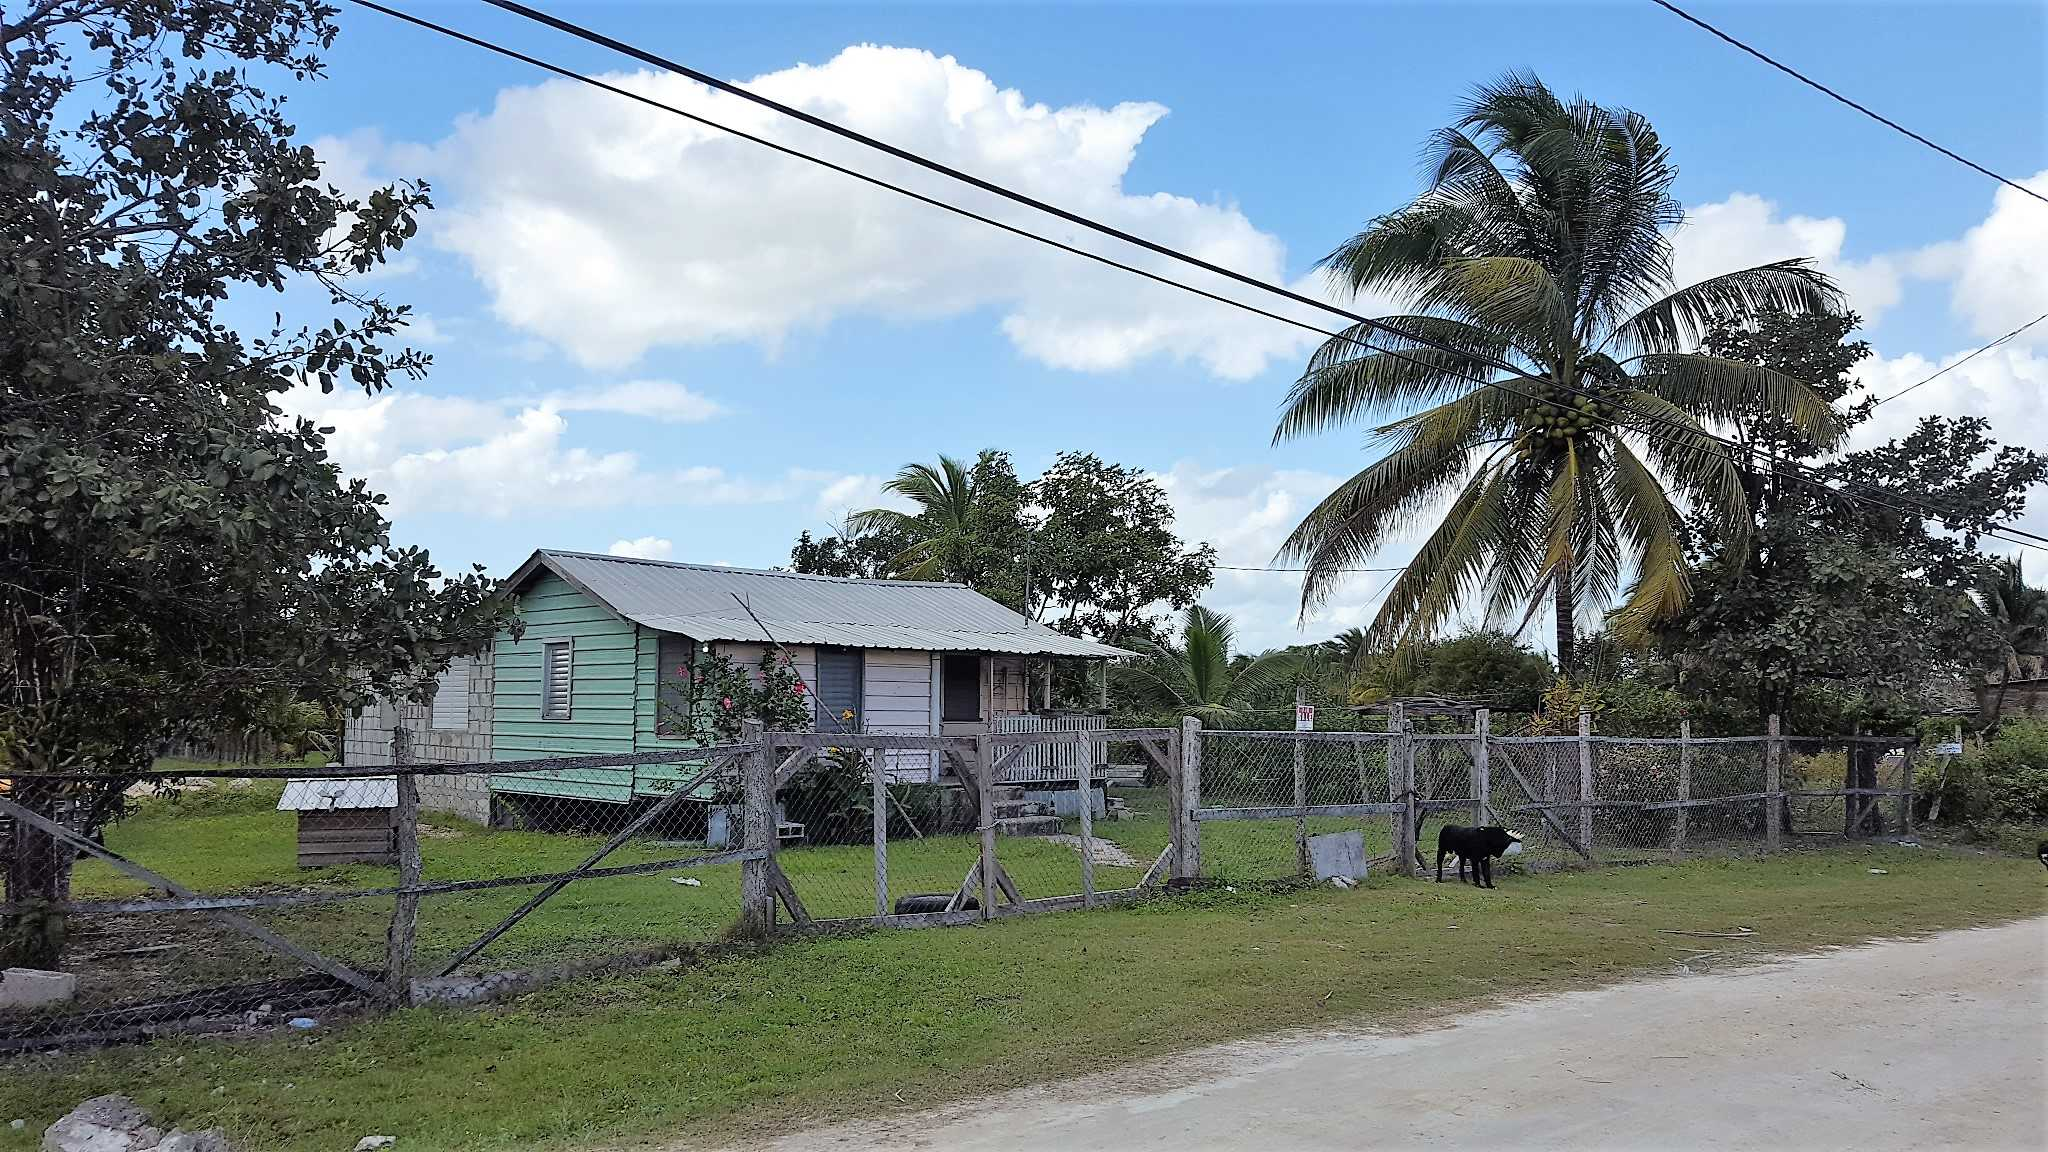 Buy Belize Real Estate - CPC, your trusted broker in sunny Belize!